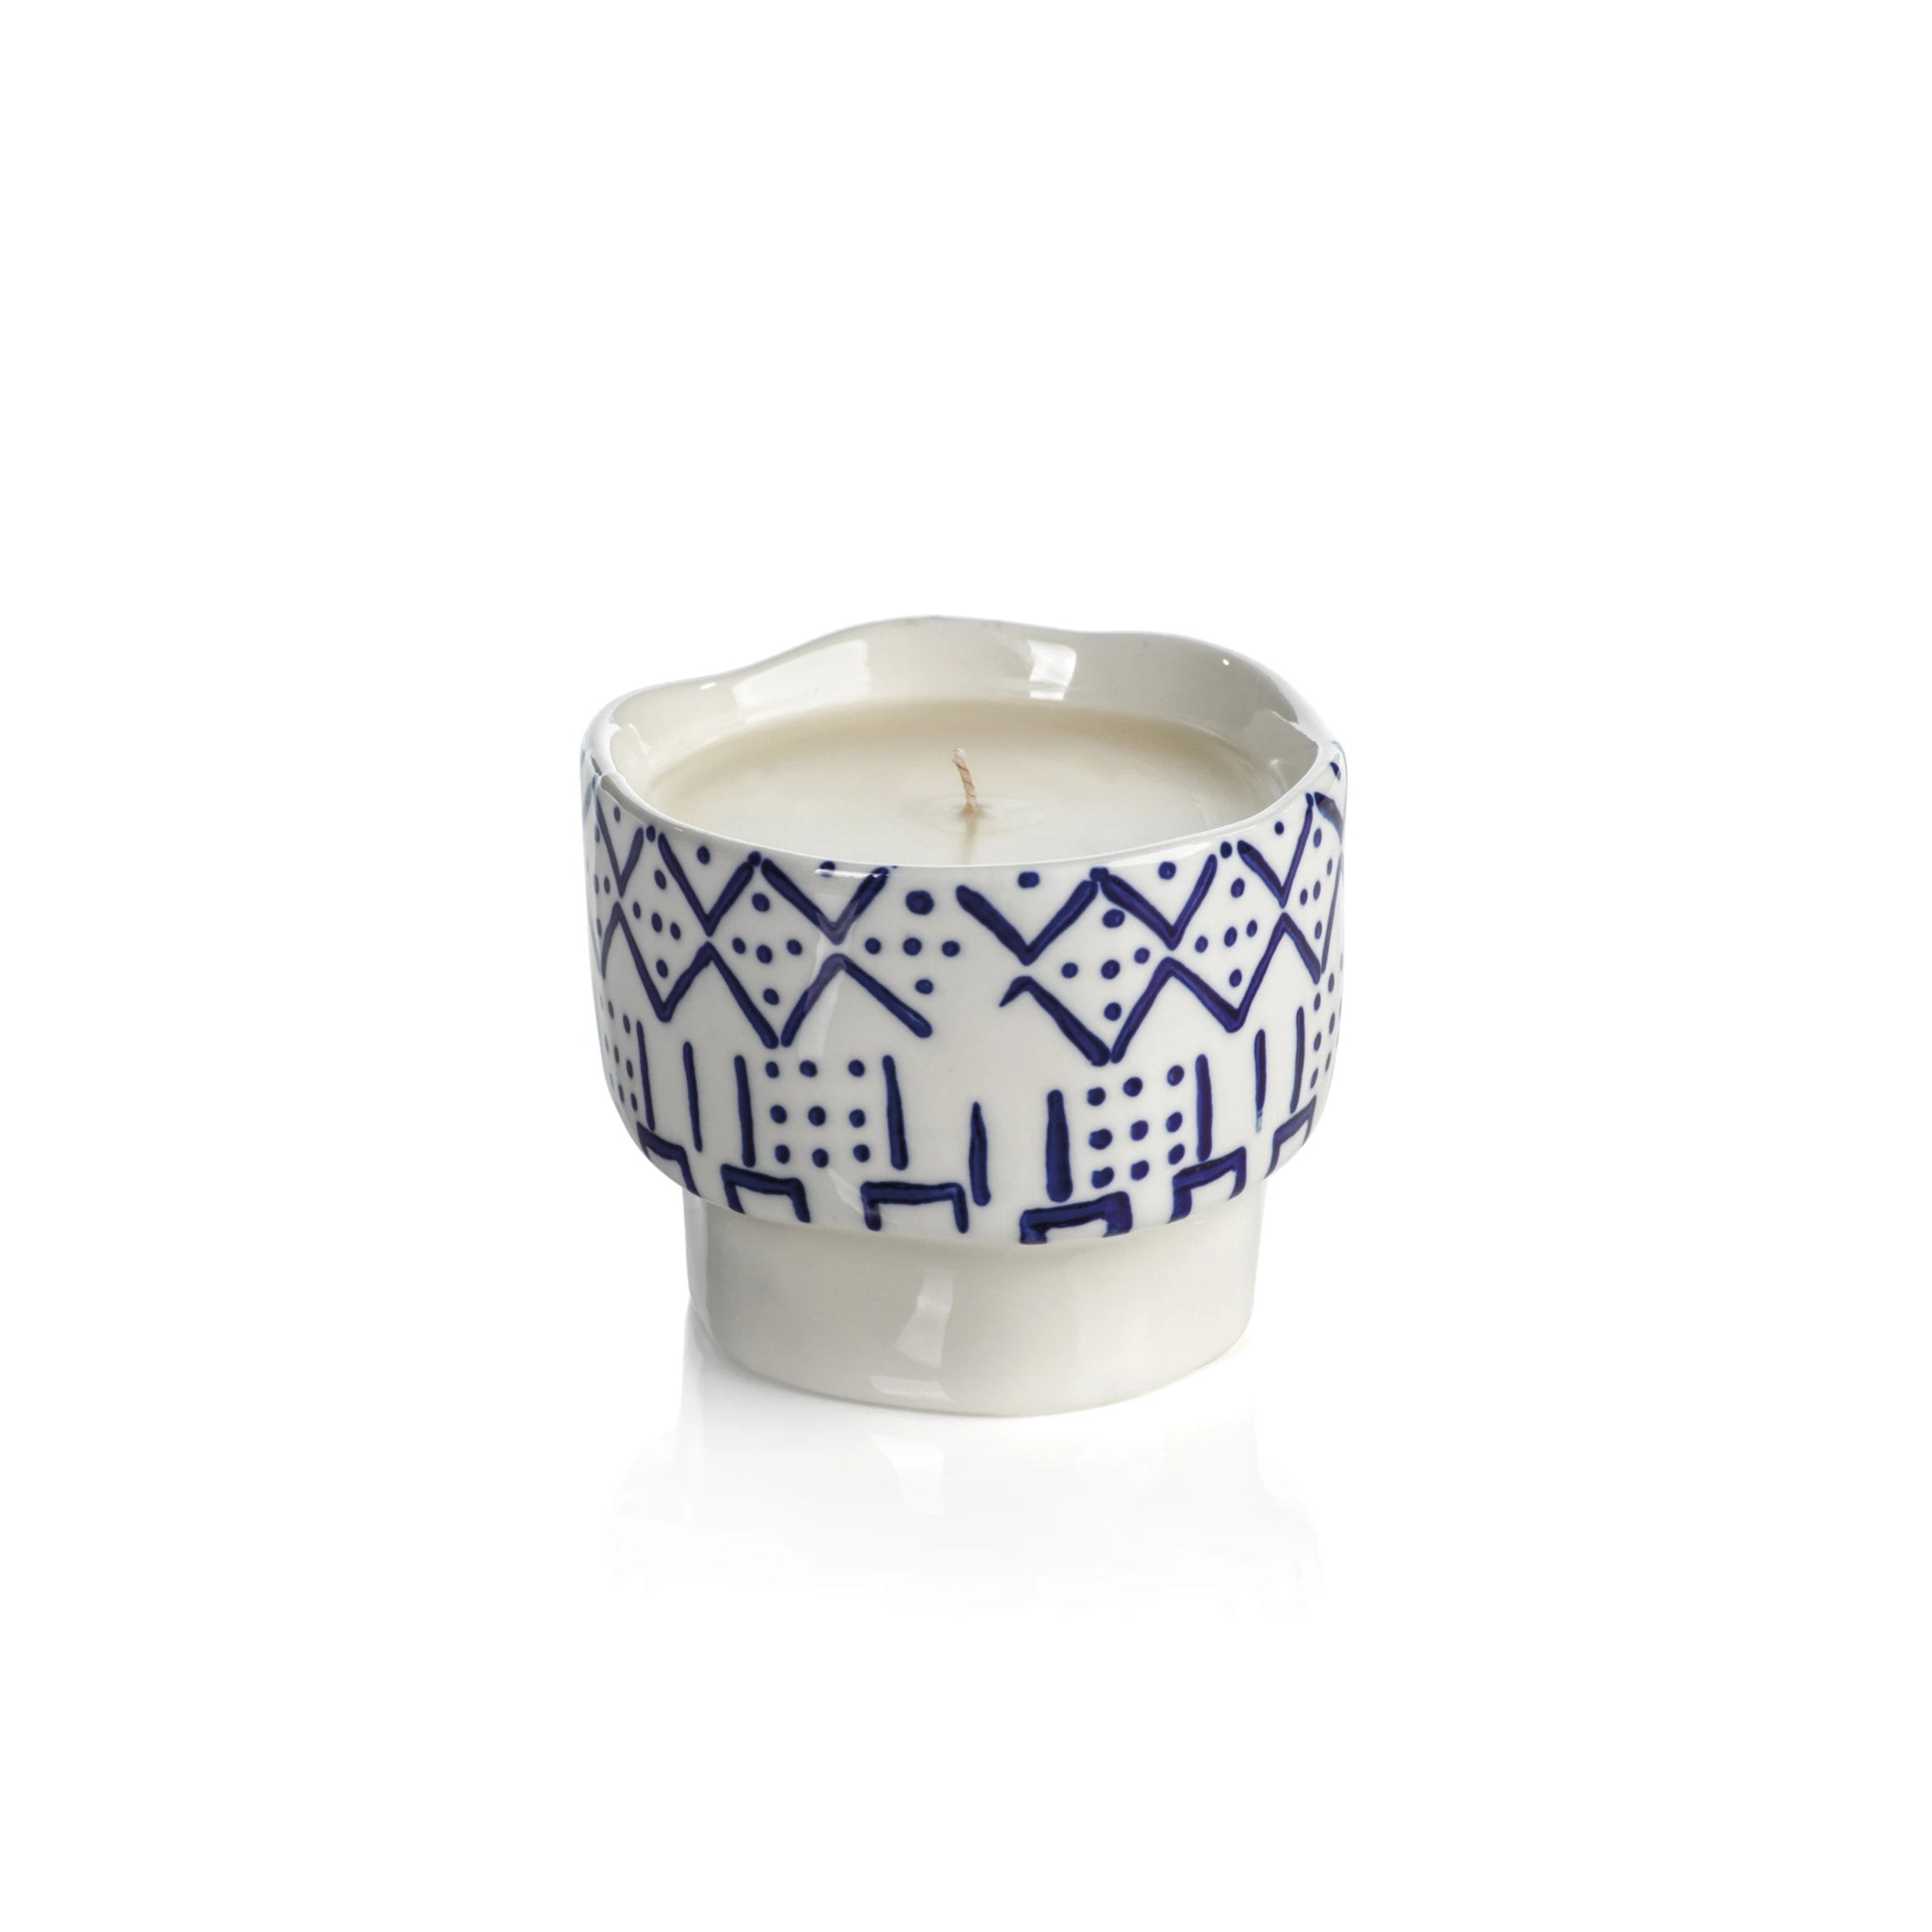 Blue Lagoon Candle - Line & Dot Pattern - CARLYLE AVENUE